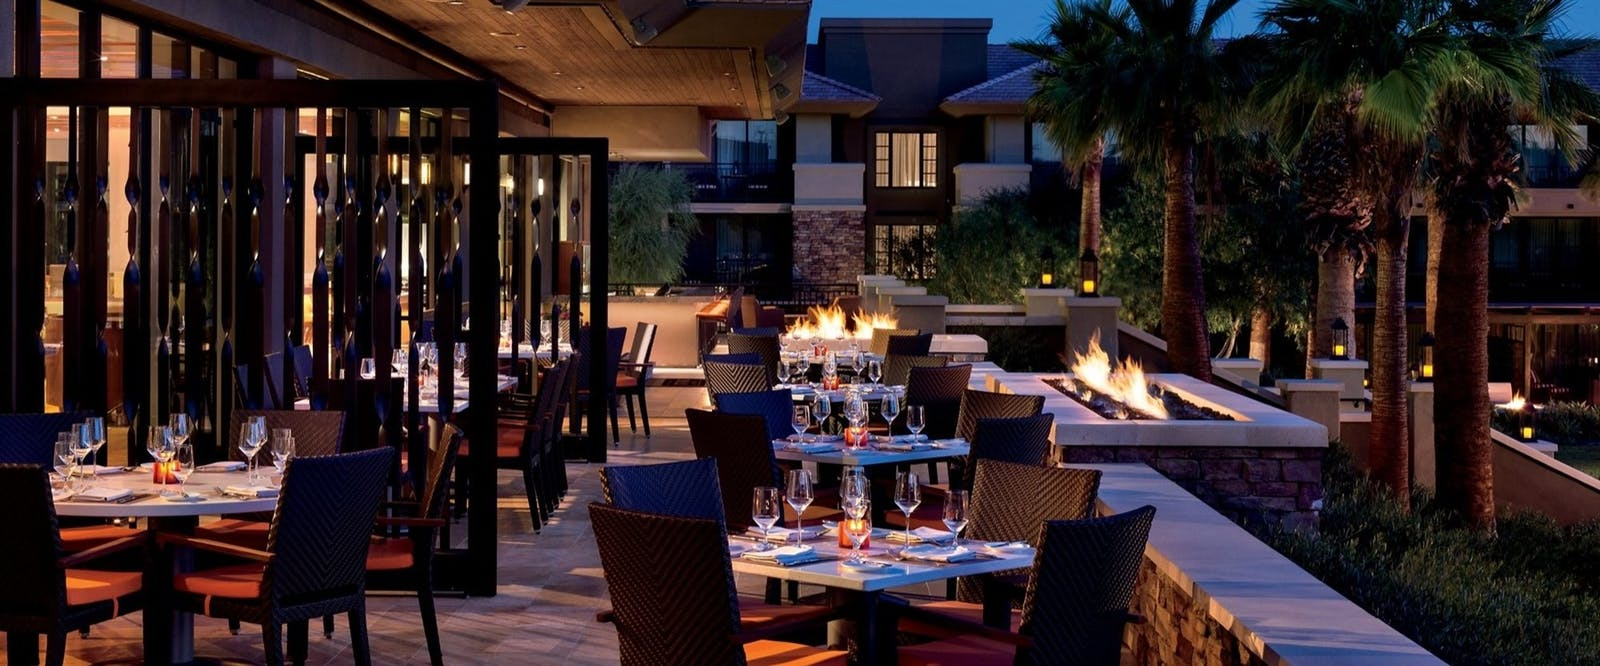 State Fare Bar and Kitchen at The Ritz-Carlton, Rancho Mirage